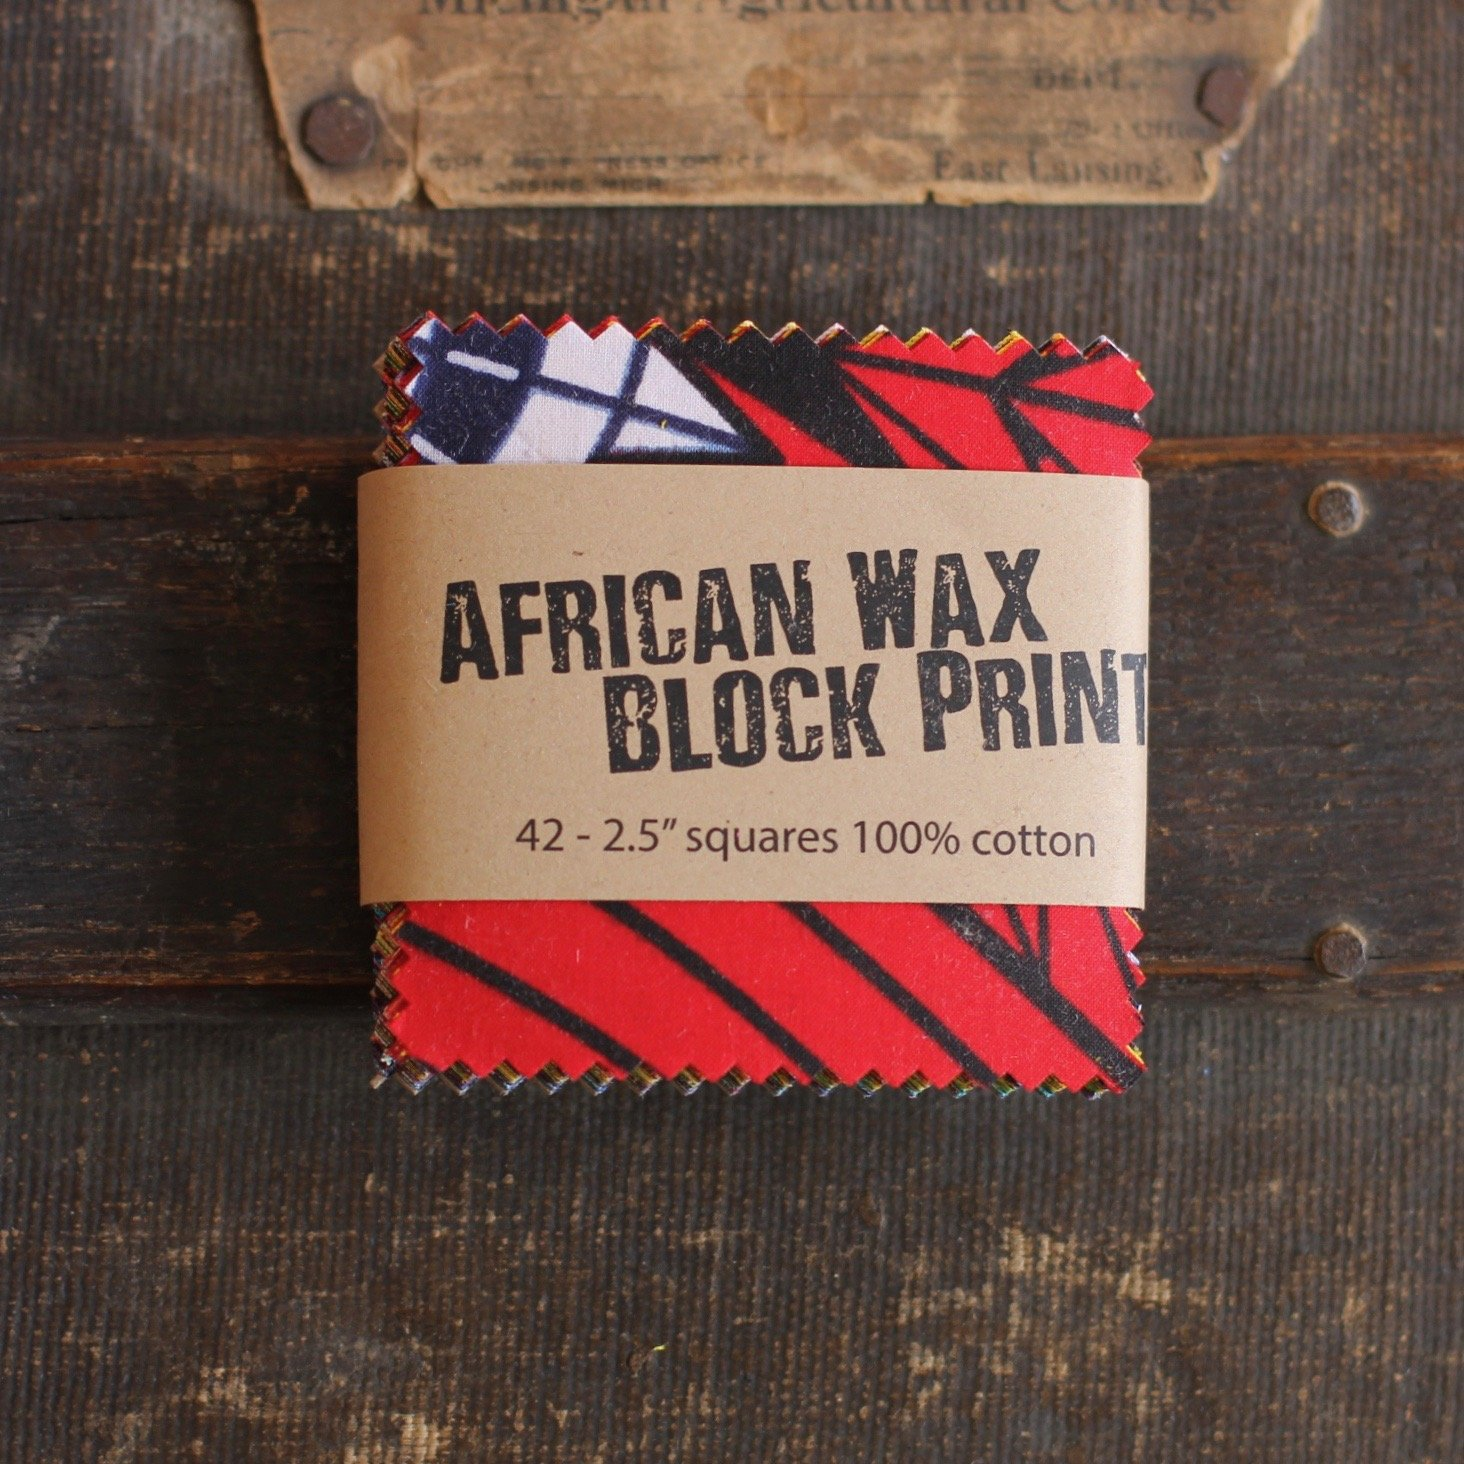 African Wax Block Print Mini Charms - (42) 2.5 squares